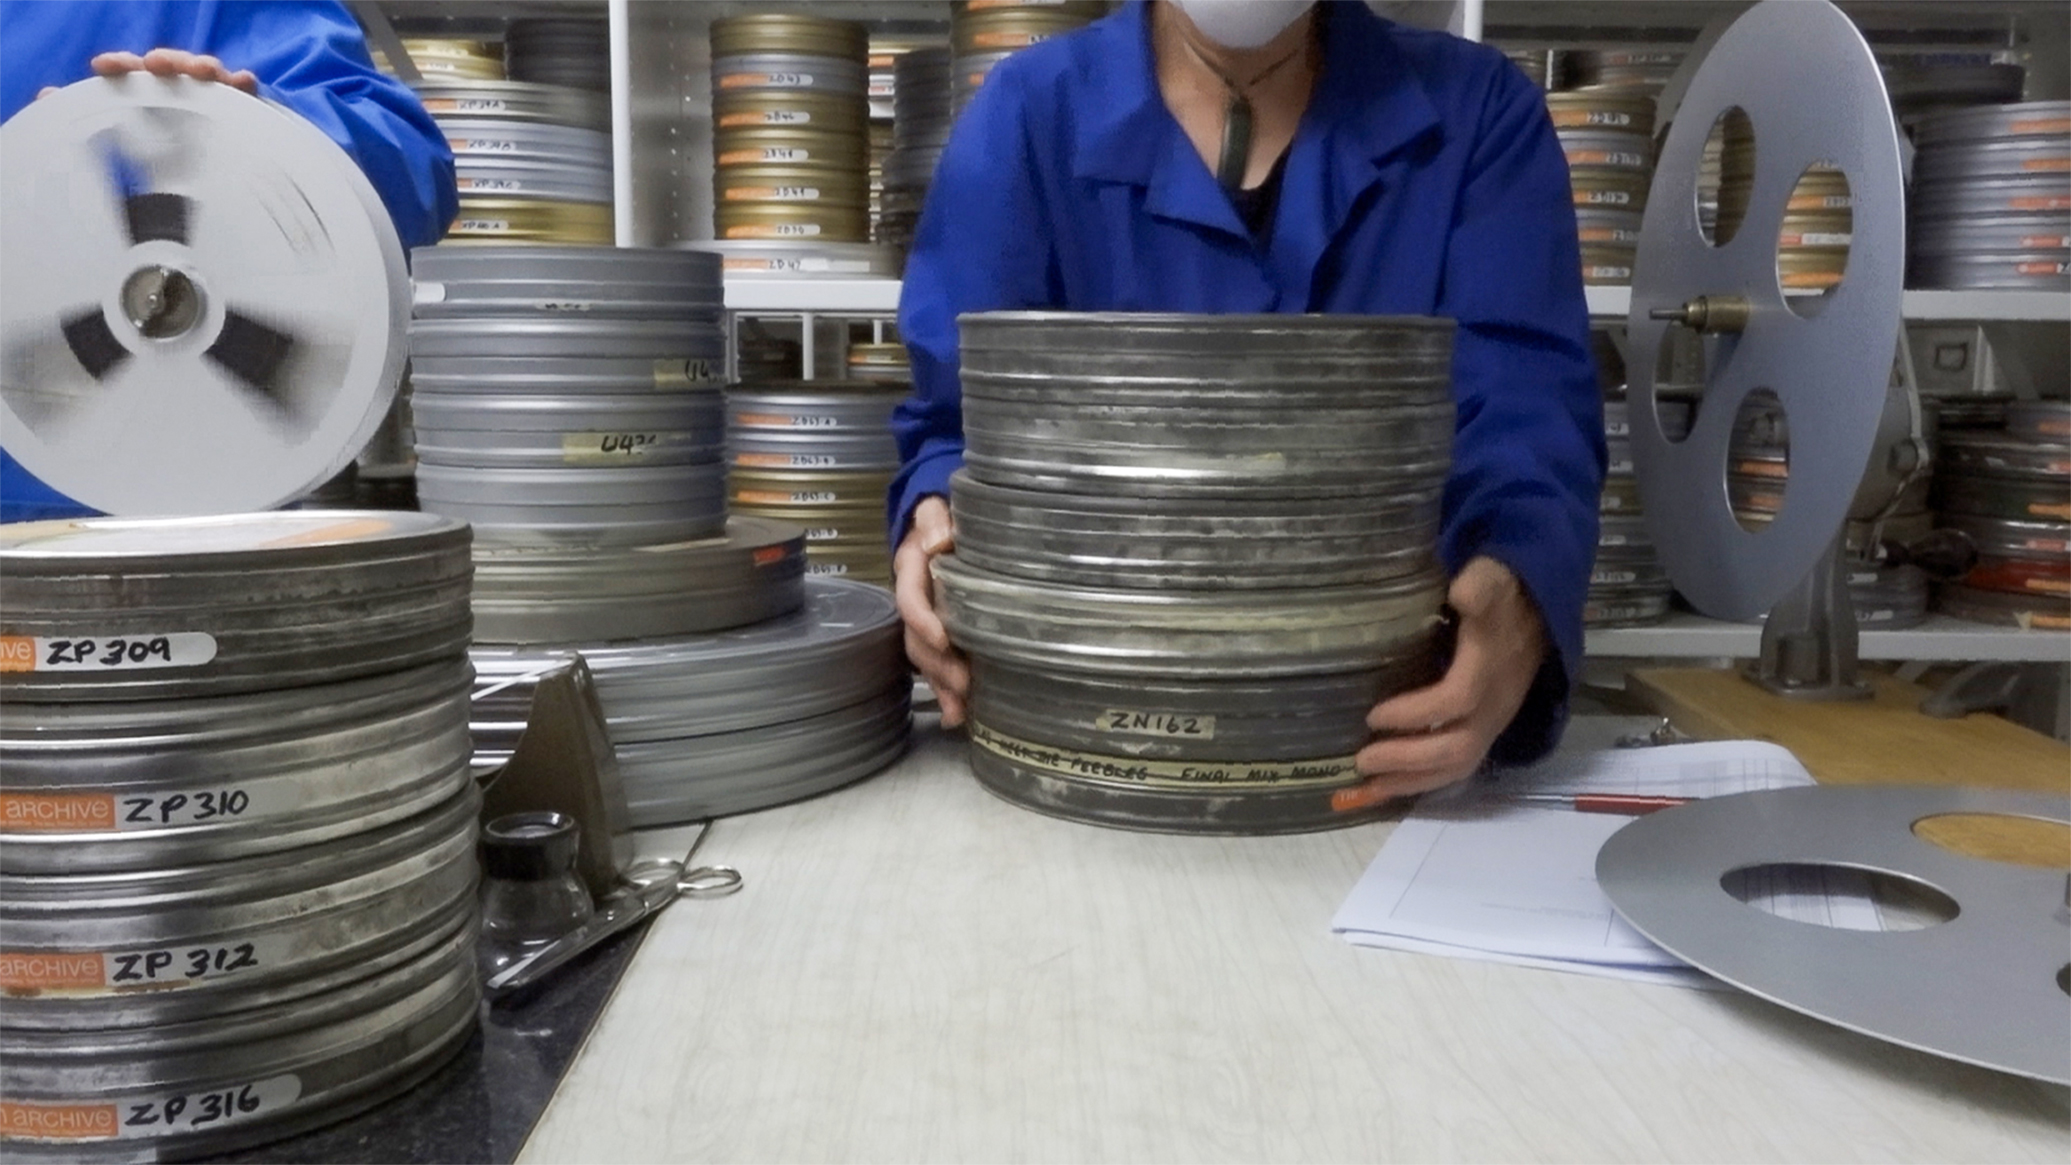 A staff member lifts a stack of film cans